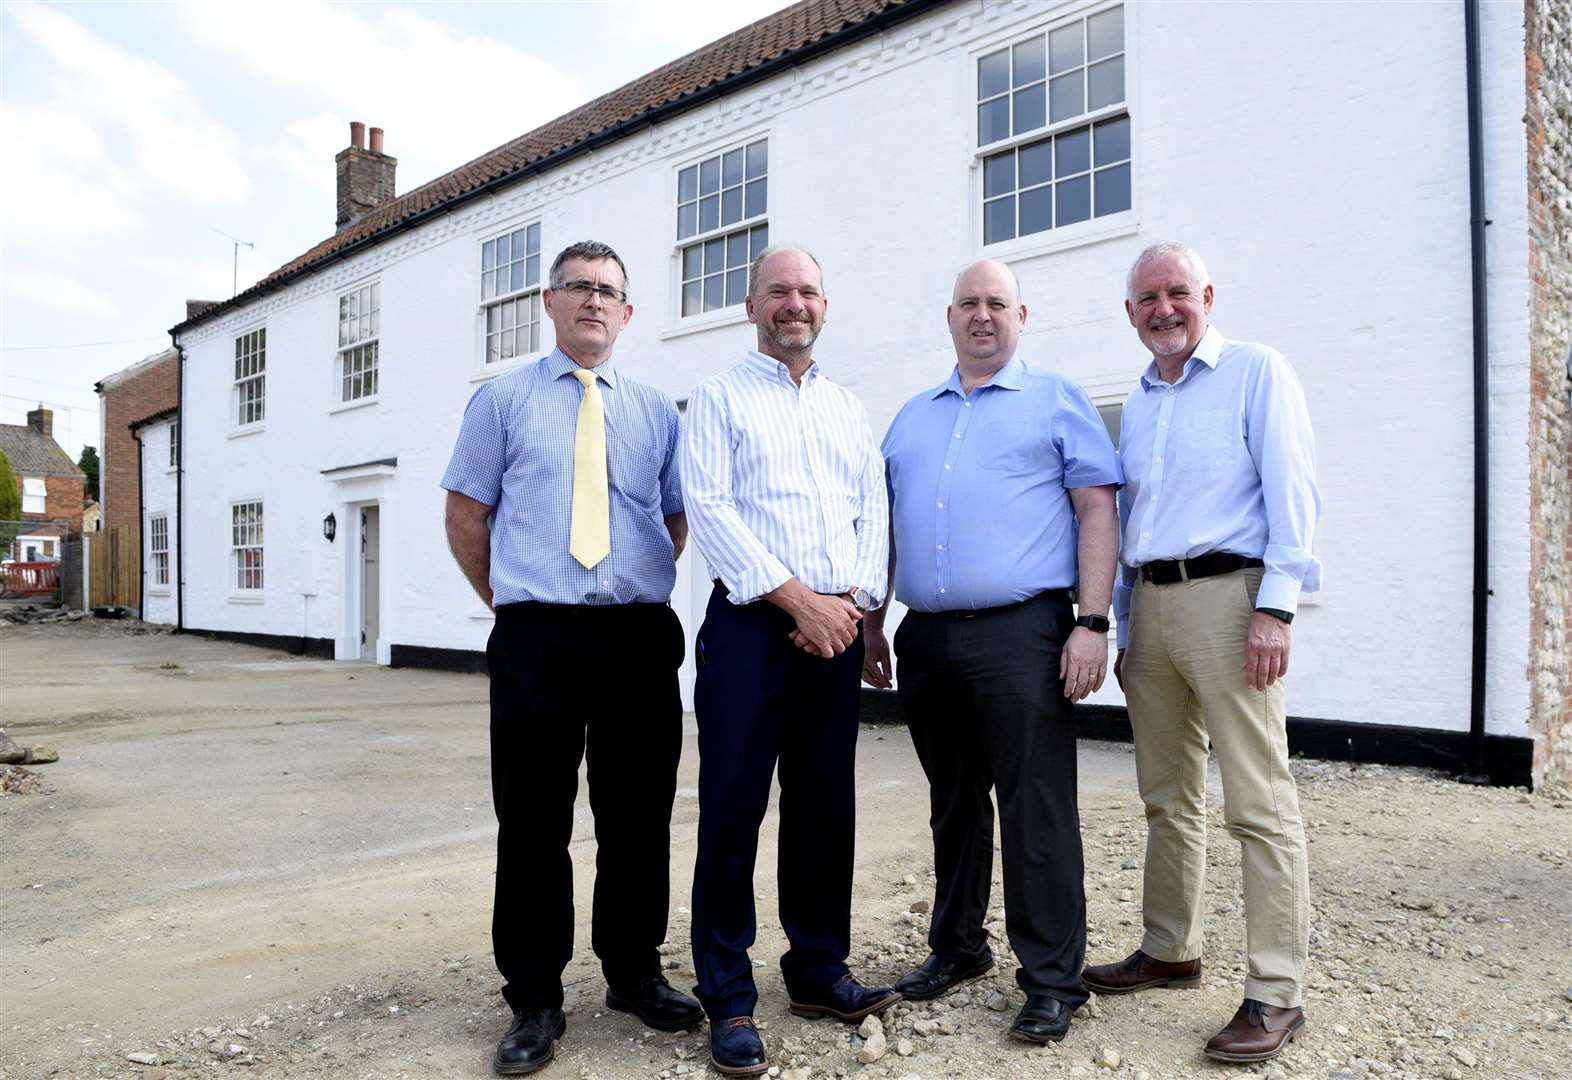 Tour of Freebridge development at old Rampant Horse at Gayton. Left to right, Andrew Mowbray, Tony Hall, Alex Dixon and Andy Walder (1935621)